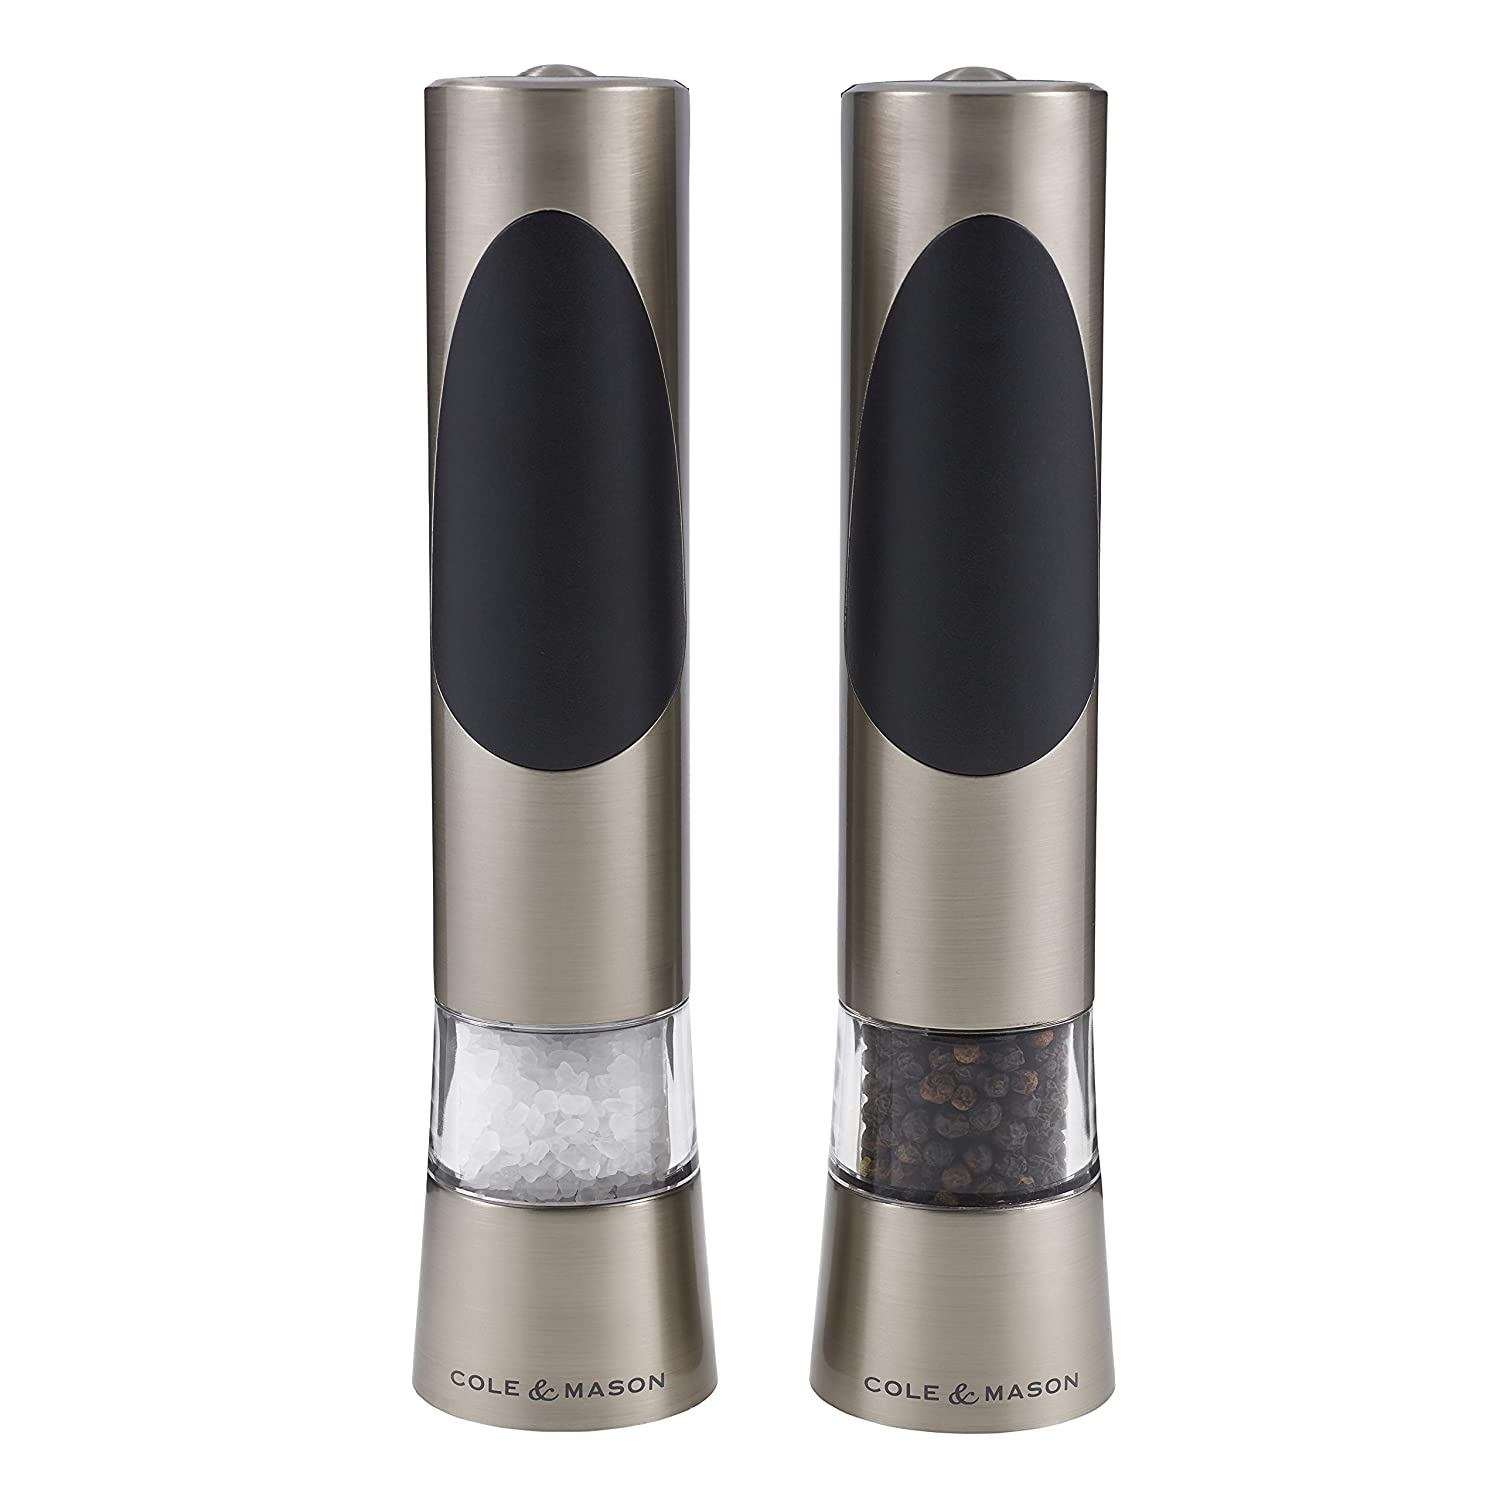 Cole & Mason Precision Grind Richmond Electronic Salt and Pepper Mill Gift Set, Brushed Steel/Silver, 21.5 cm DKB Household UK Ltd H90180P